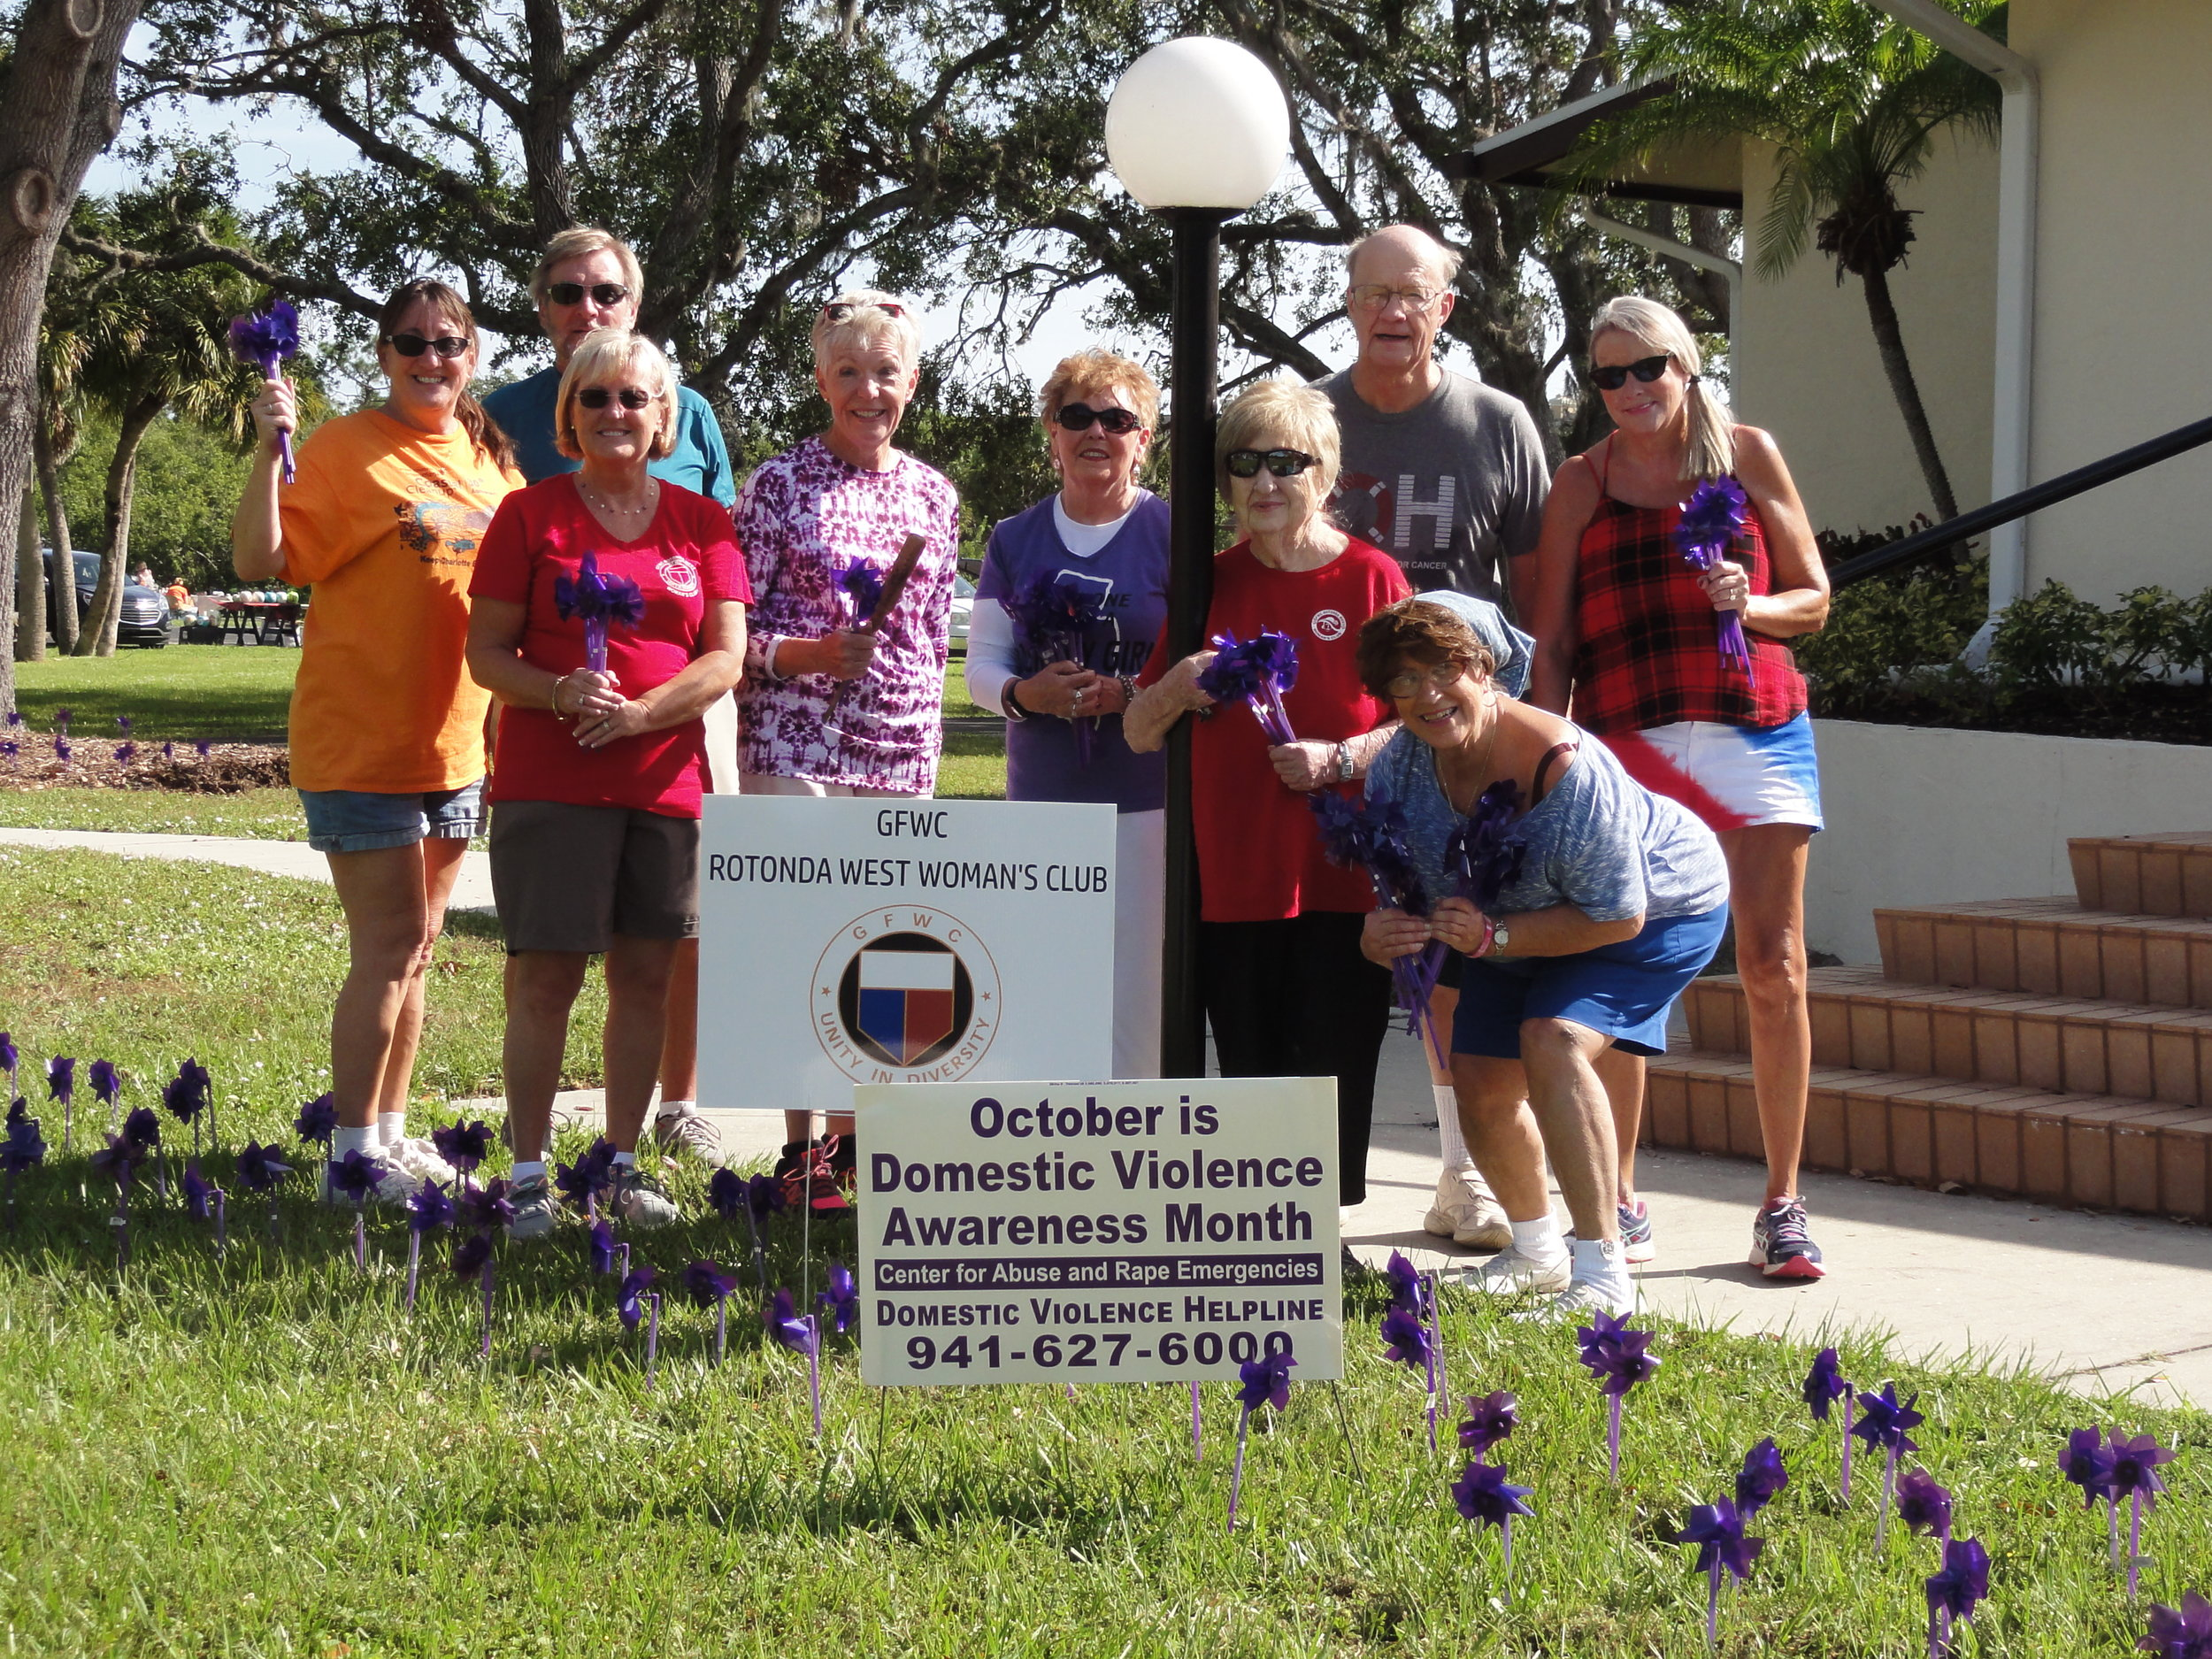 GFWC RWWC purple pinwheels - On Saturday Oct. 21st, we put our Domestic Violence Awareness purple pinwheels on Rotonda West Blvd in front of the Faith Lutheran Church & Rotonda West Community Church. Thanks to Everyone that helped !!!